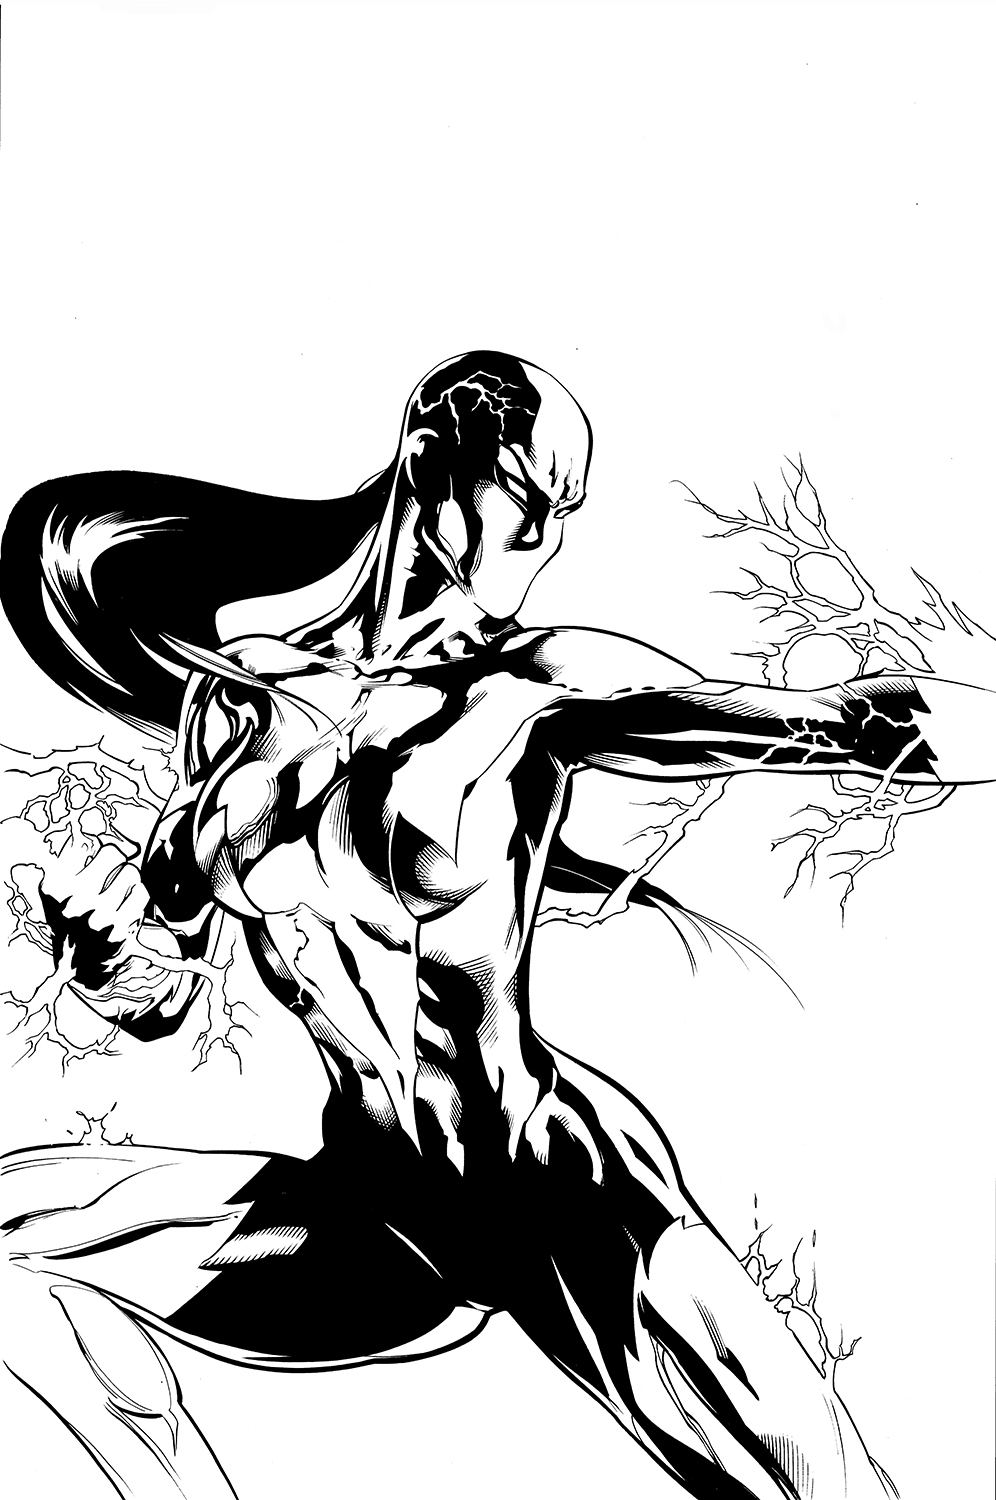 Pencils by Doug Mahnke, inks by Keith Champagne